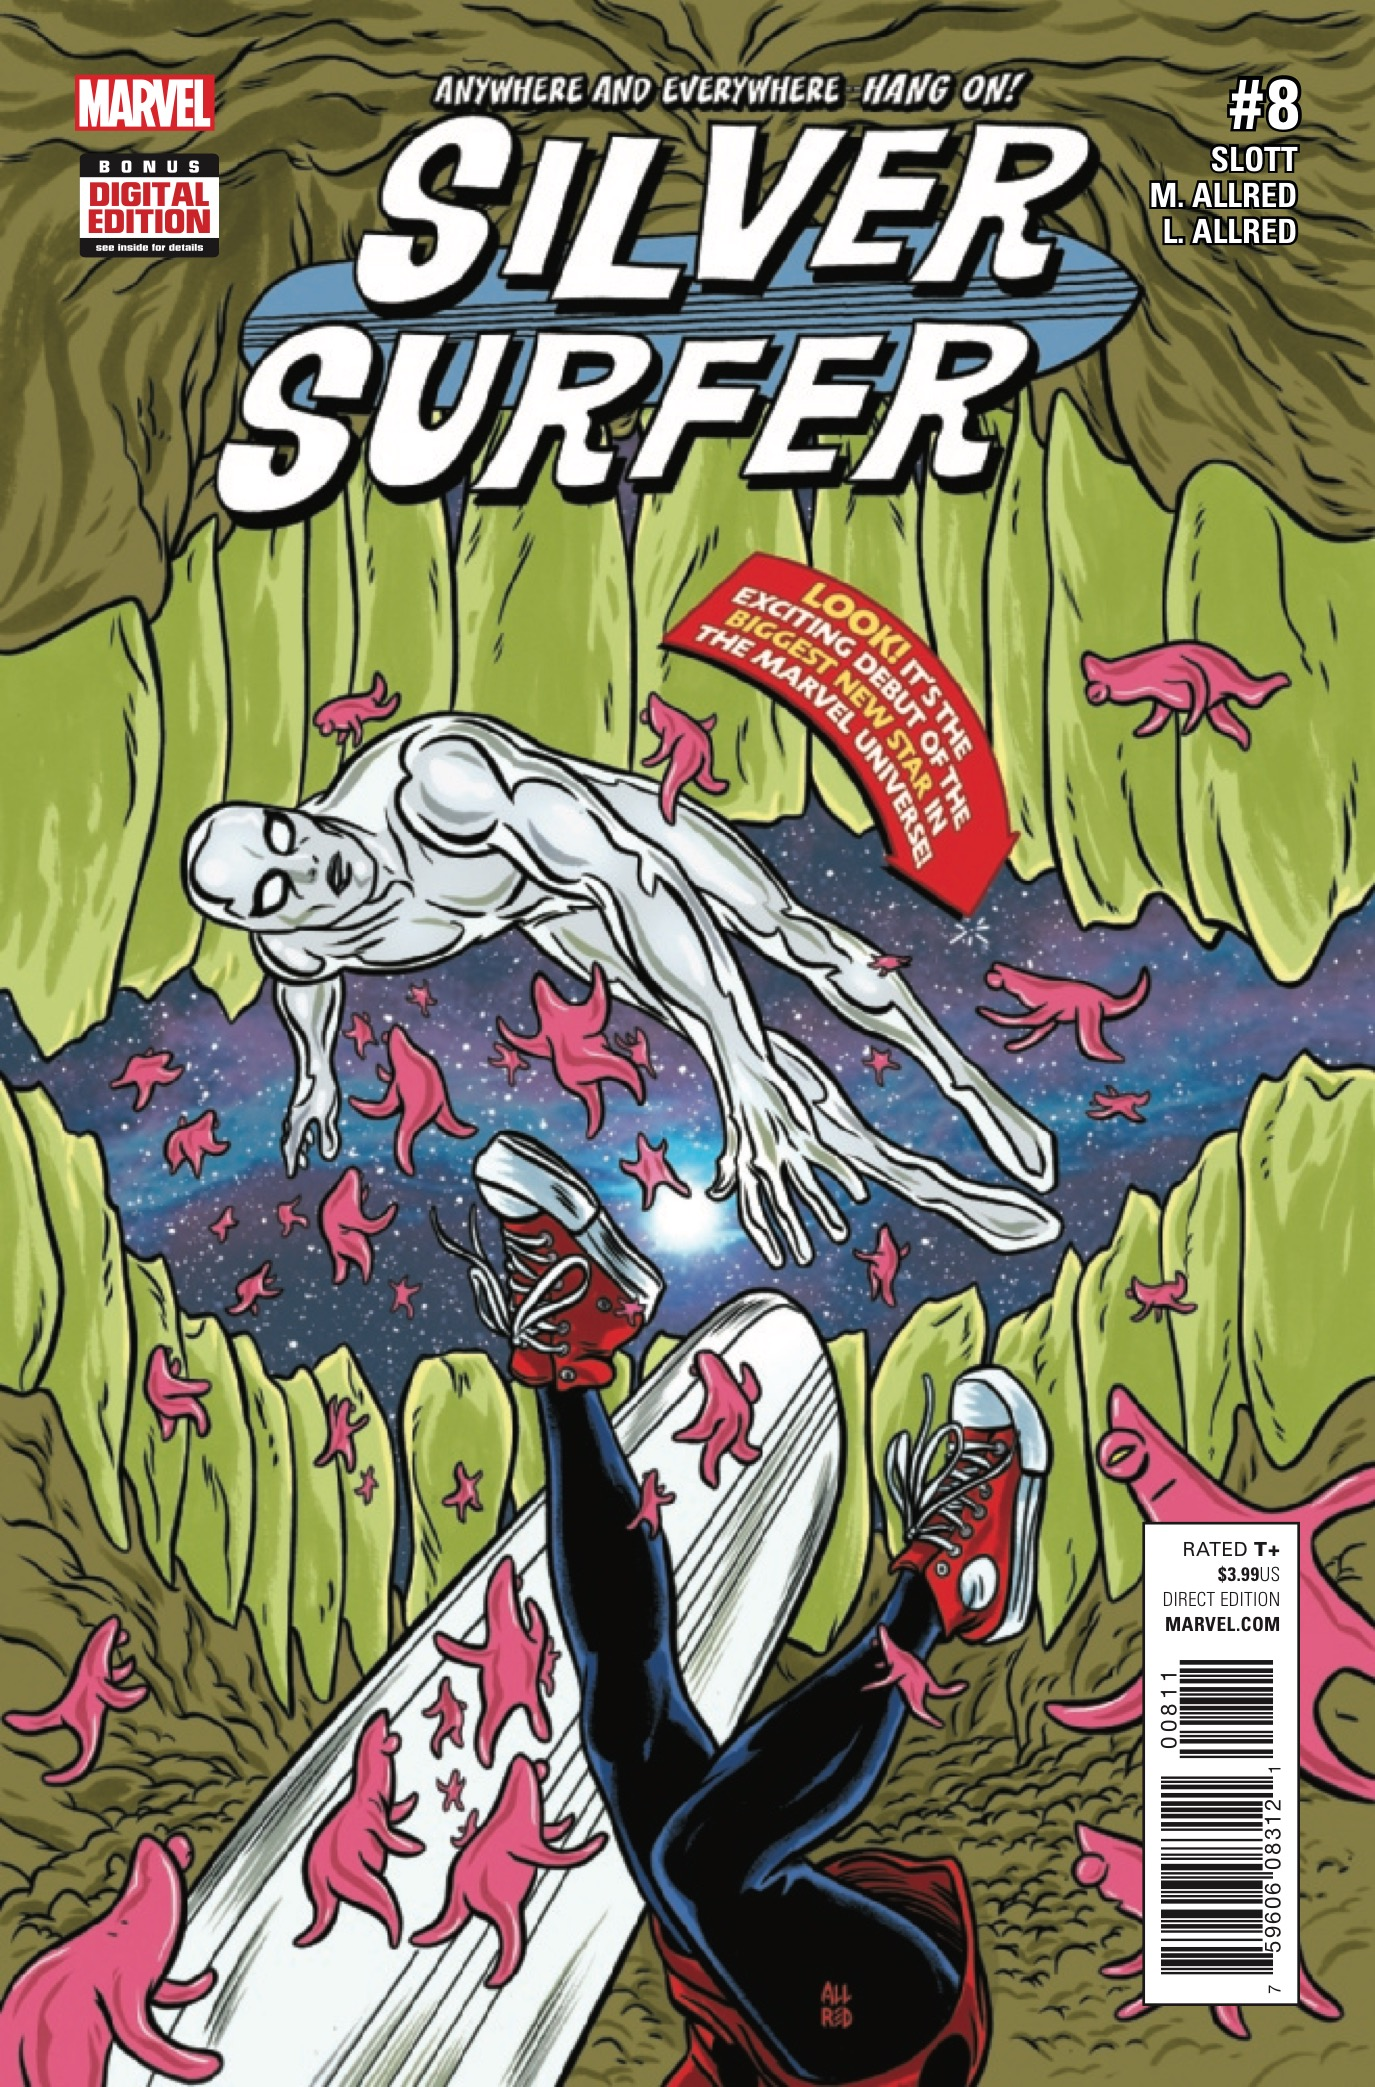 Silver Surfer #8 Review